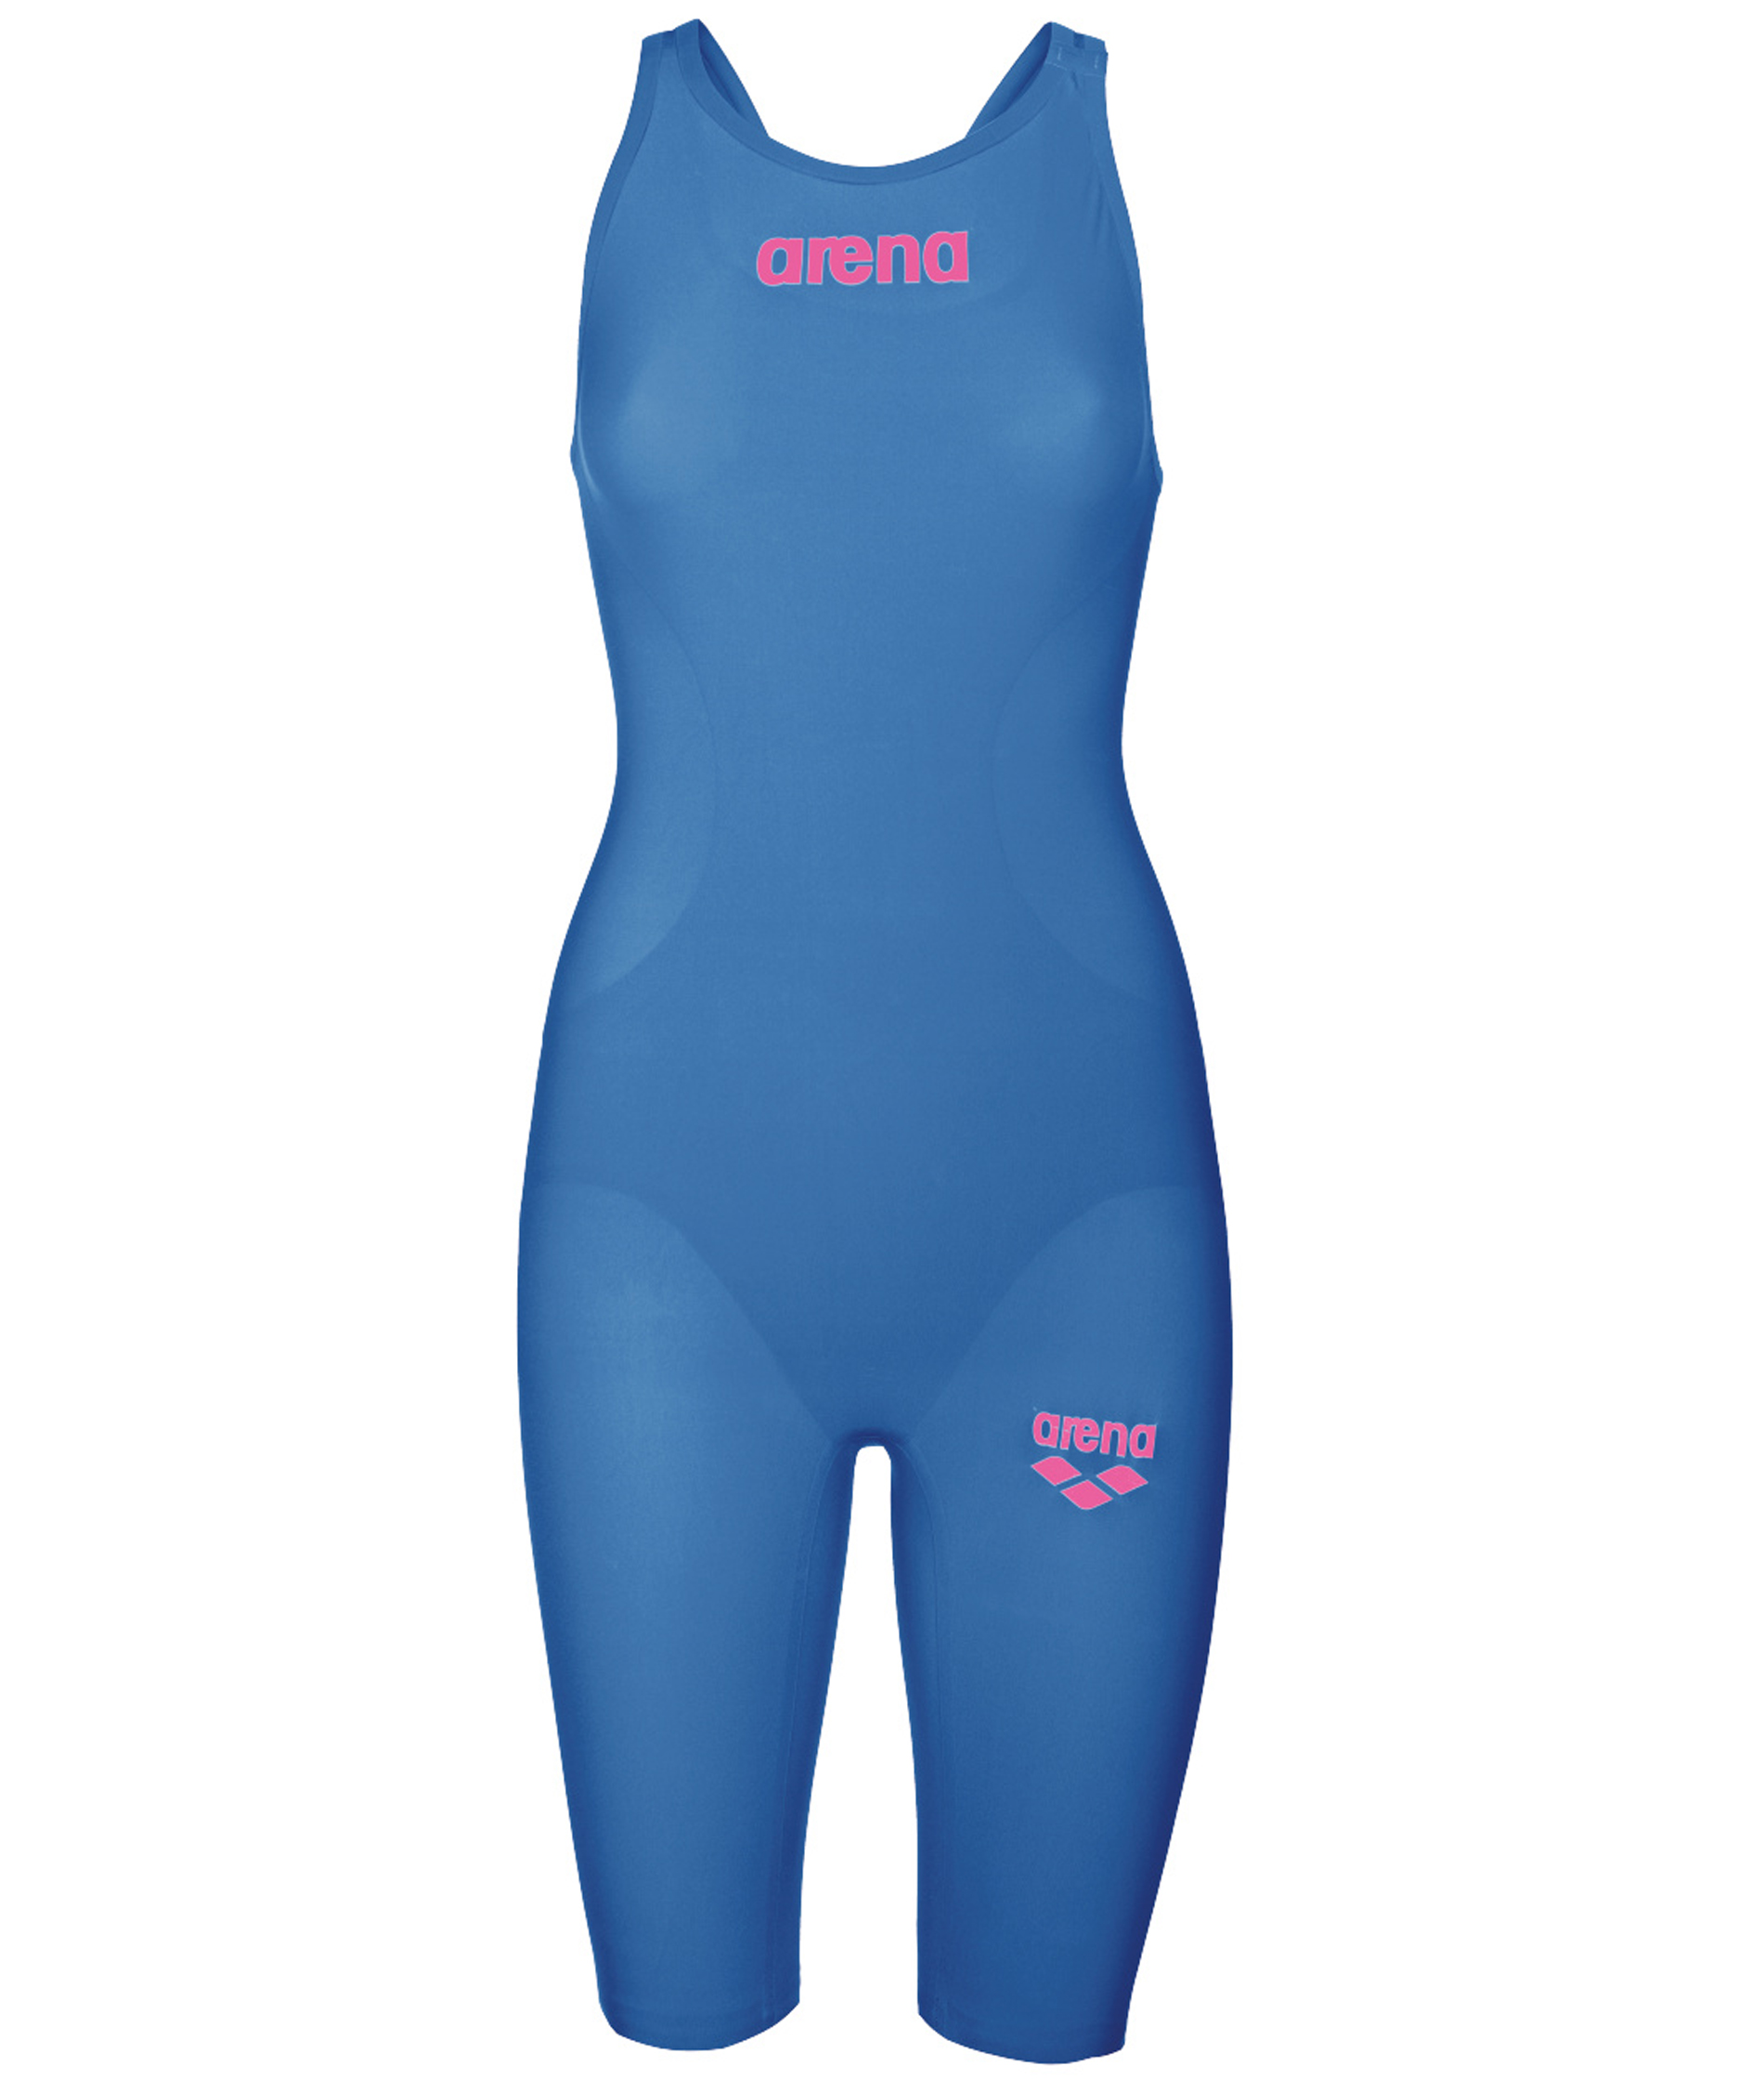 Arena Girls Powerskin R-EVO ONE Open Back Race Suit - Blue/Pink